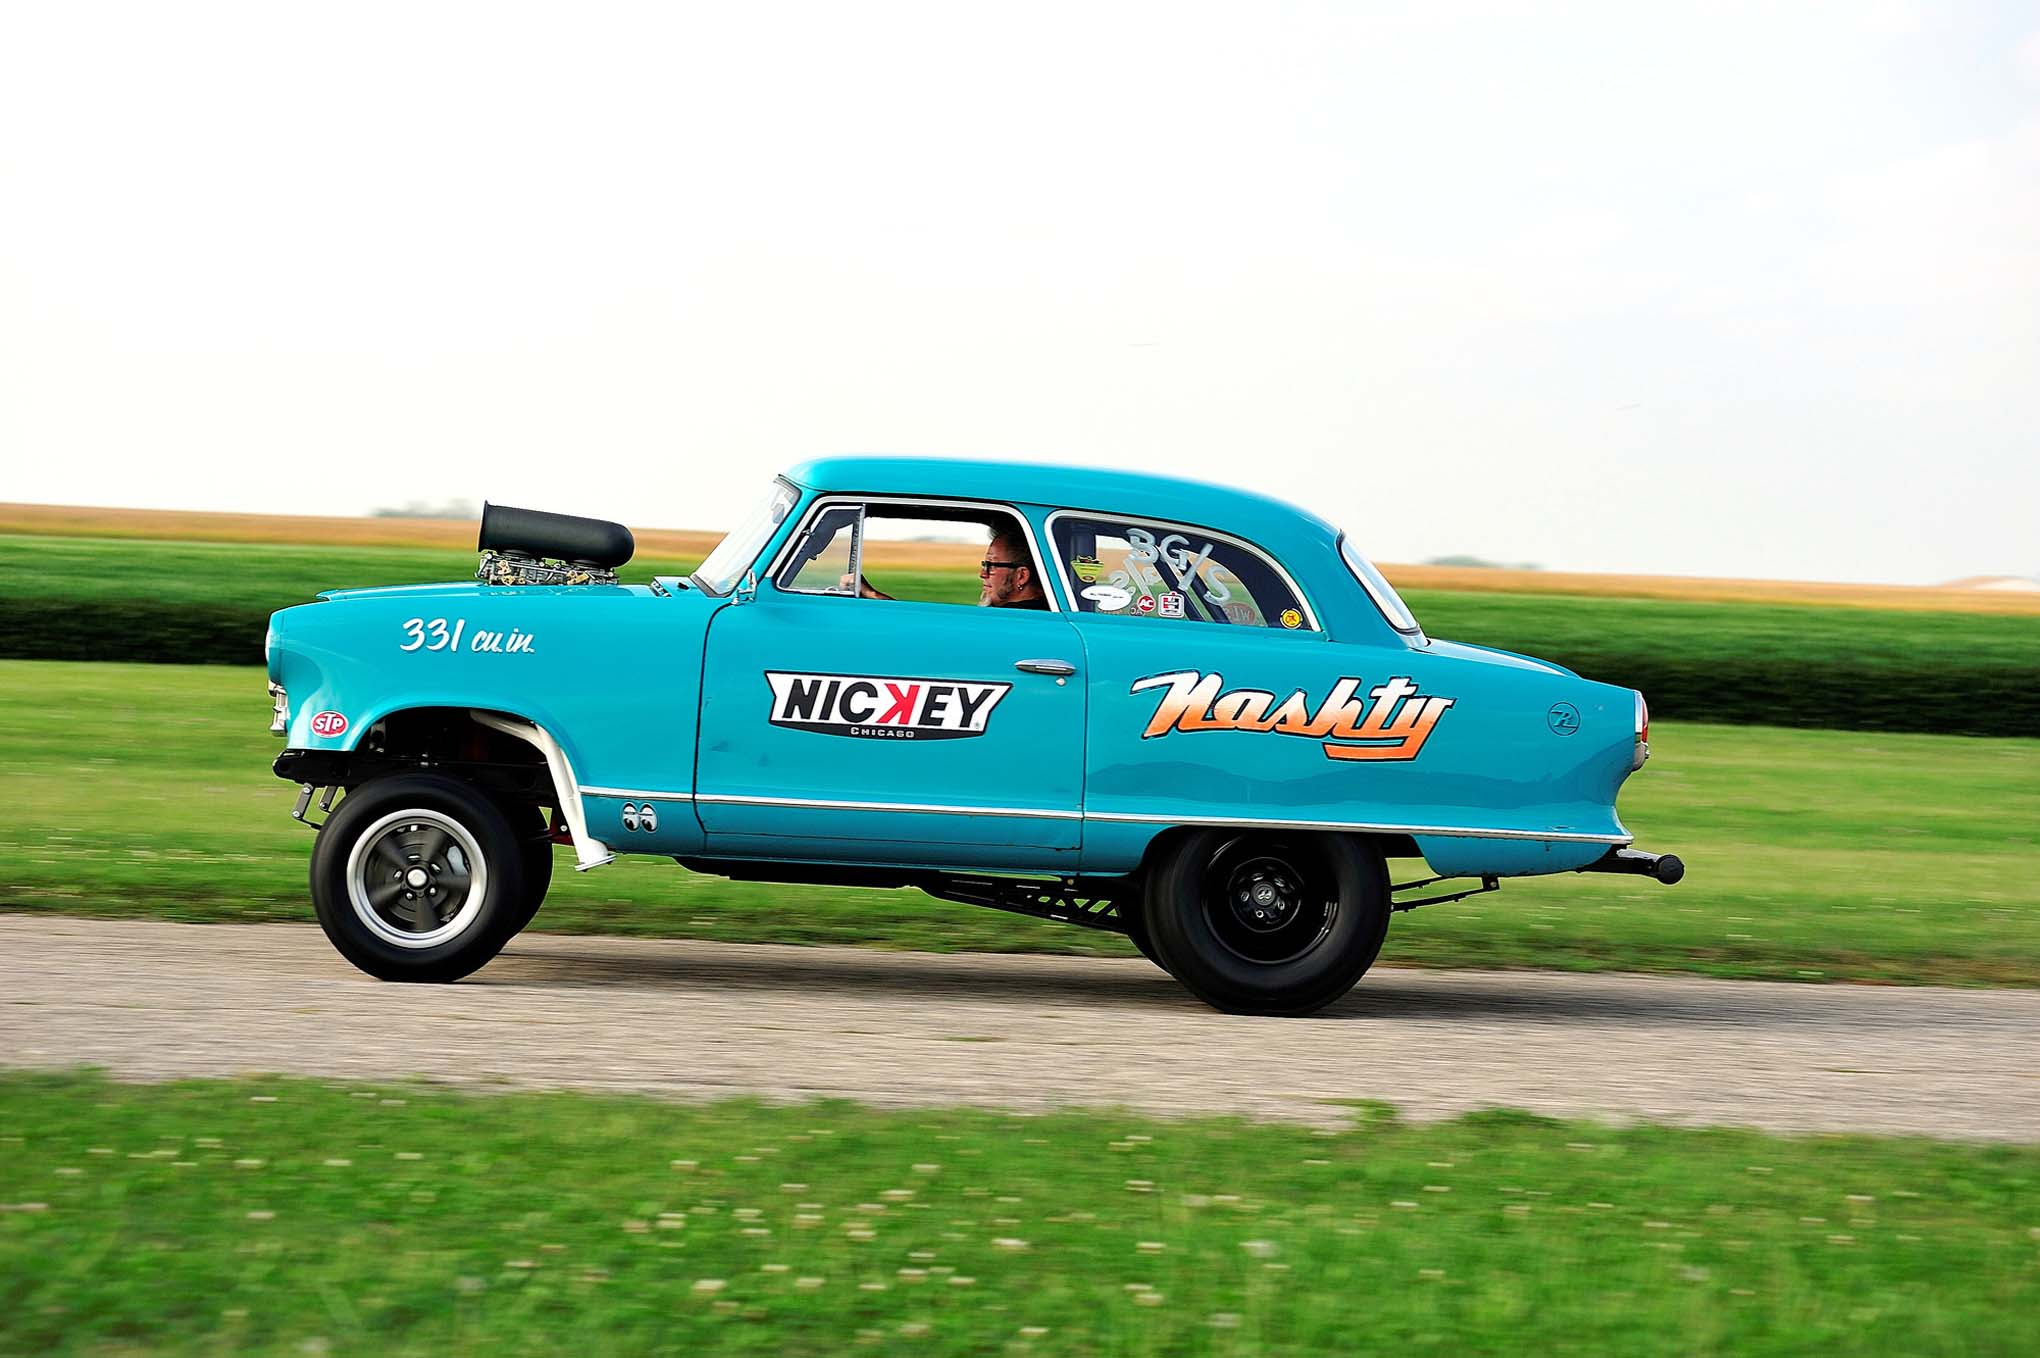 Pretty as she is, Nashty is no static piece of garage art. Nickey's one-of-a-kind Nash will haul when given the chance. Tinberg plans to run the car at the 2016 Meltdown Drags.